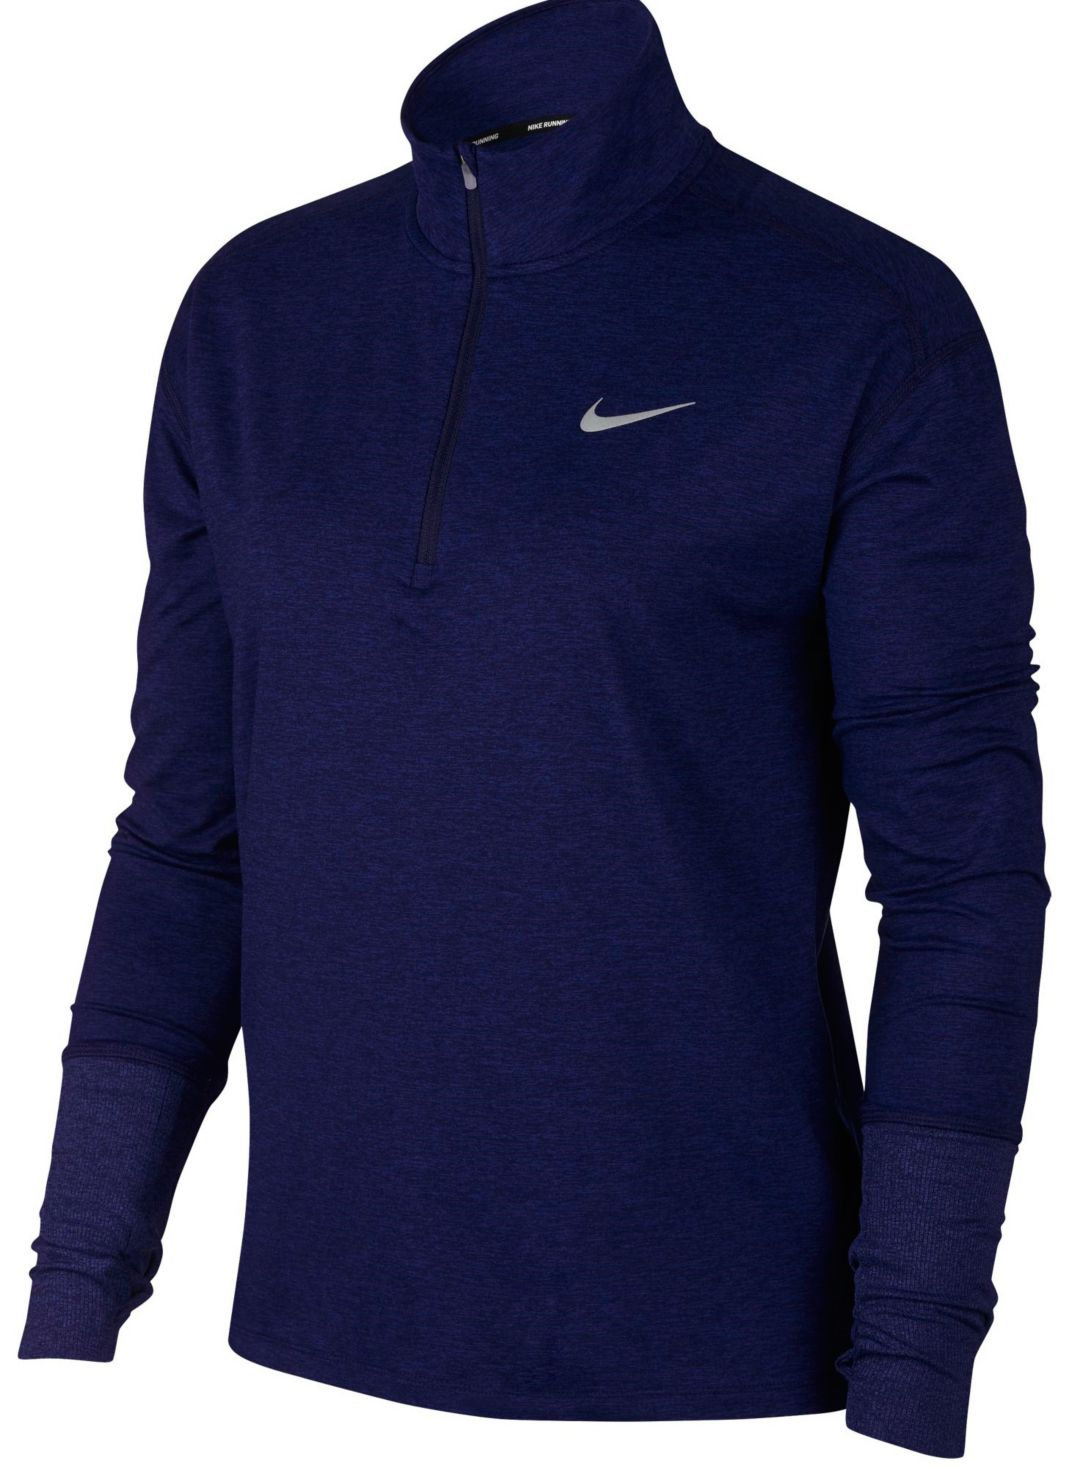 90fabe90 Nike Women's Element Half-Zip Running Pullover | DICK'S Sporting Goods